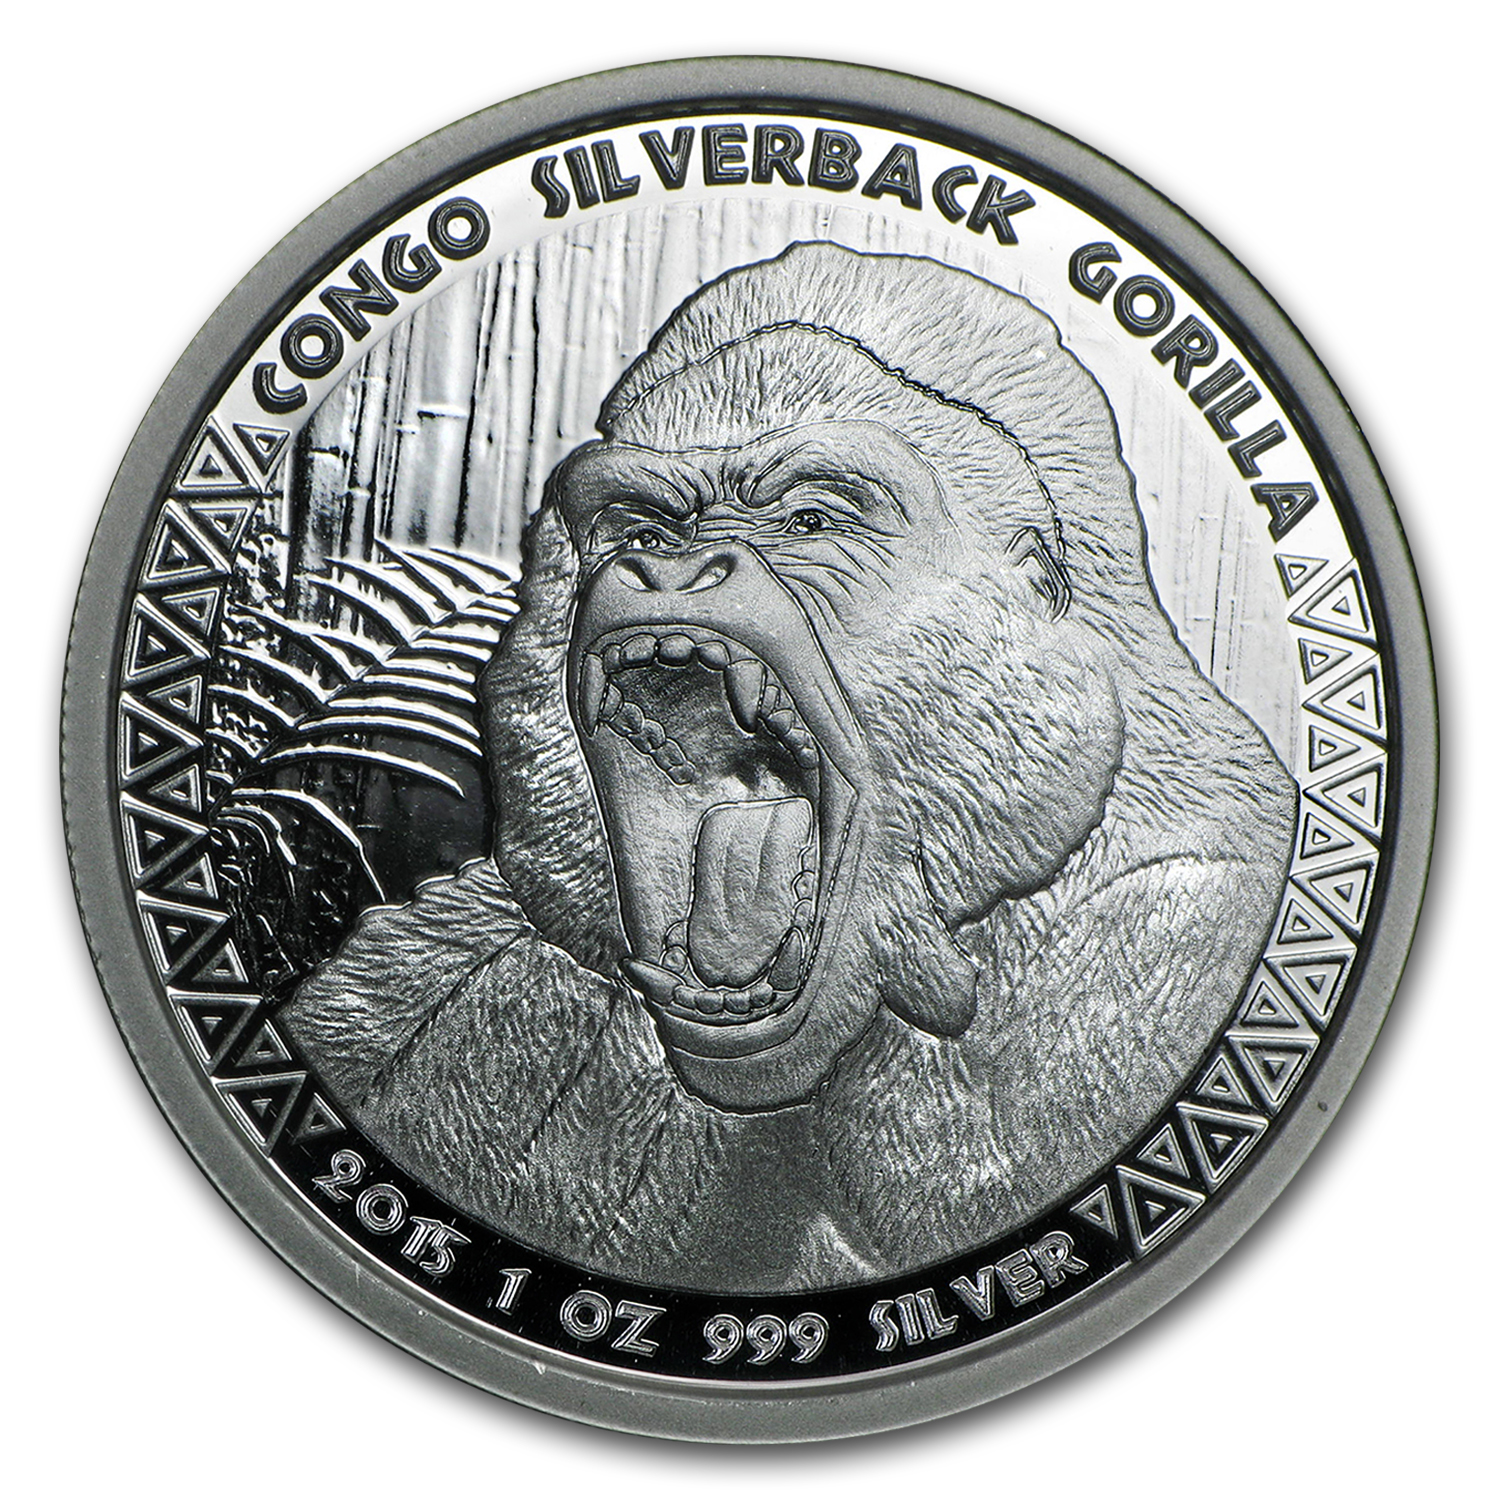 2015 Republic of Congo Silver 1 oz Silverback Gorilla (Prooflike)